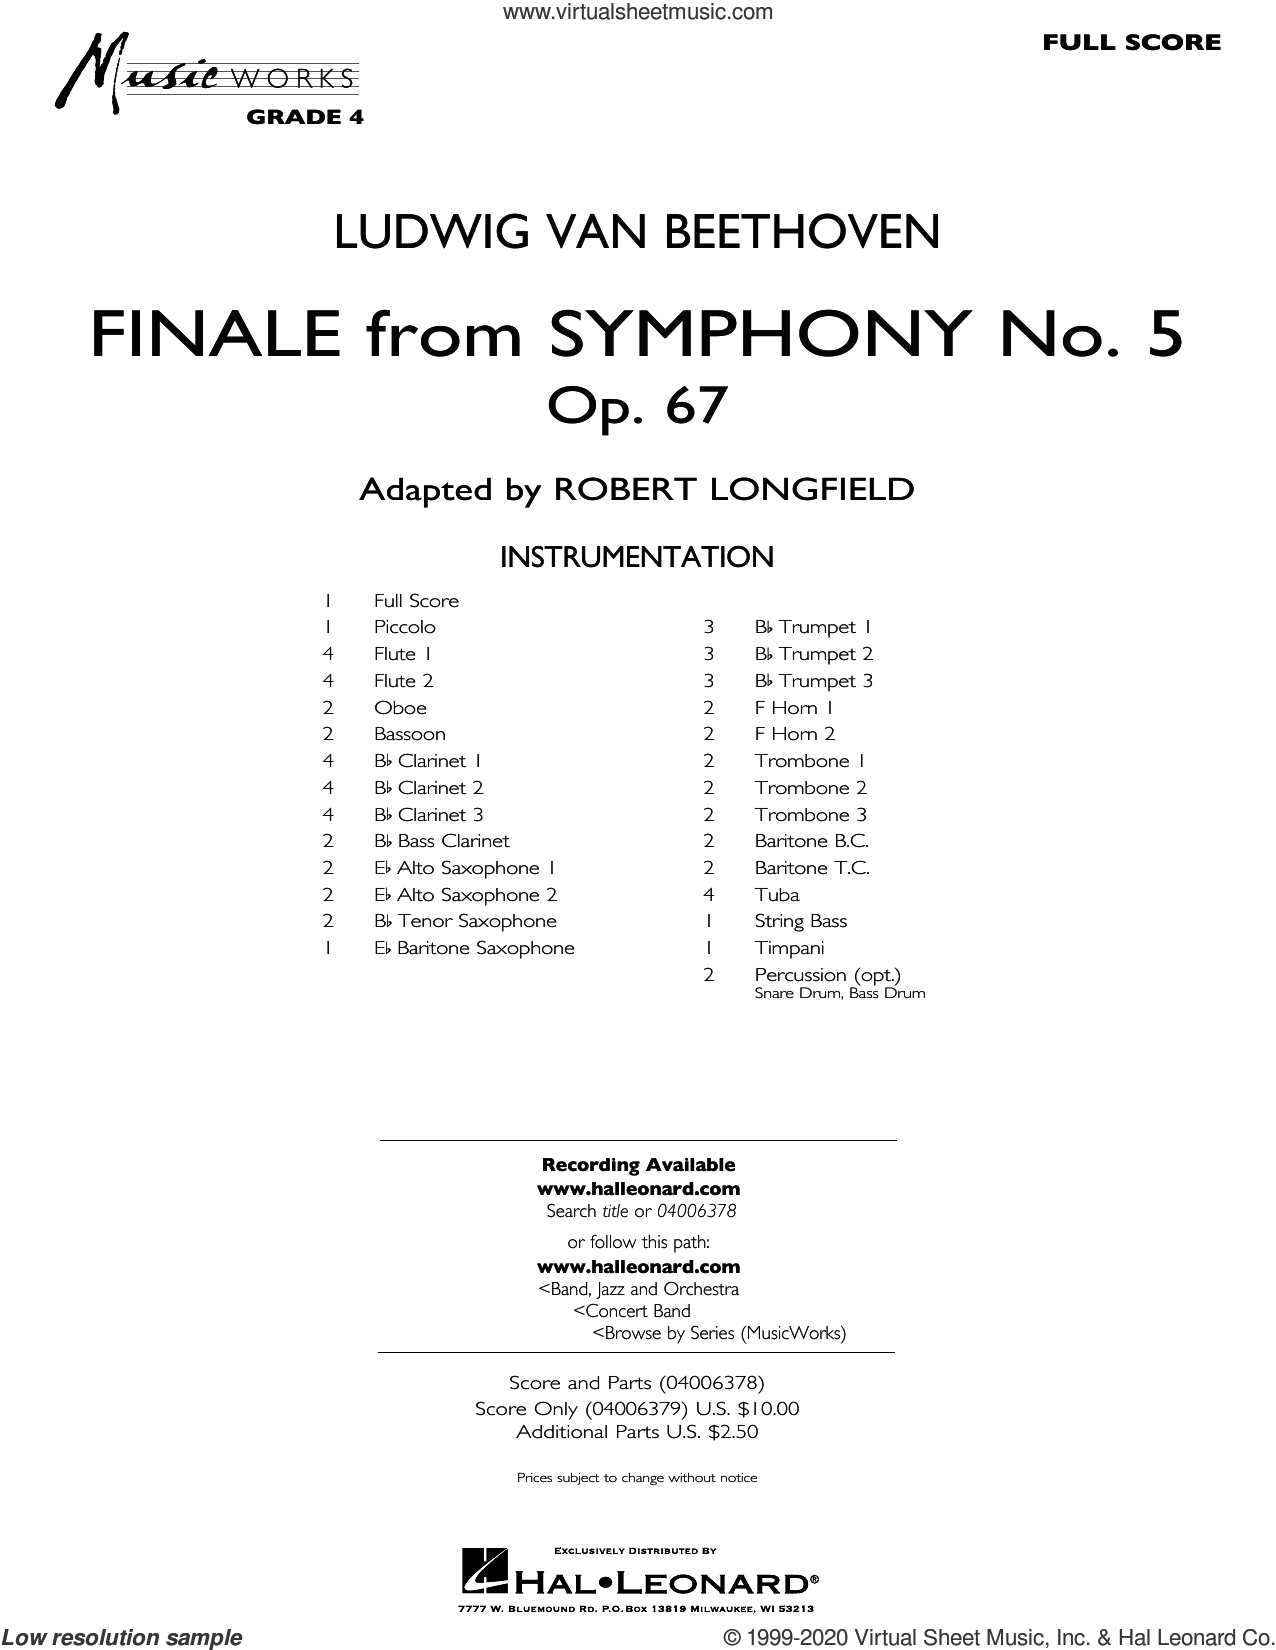 Finale from Symphony No. 5 (arr. Robert Longfield) (COMPLETE) sheet music for concert band by Ludwig van Beethoven and Robert Longfield, classical score, intermediate skill level